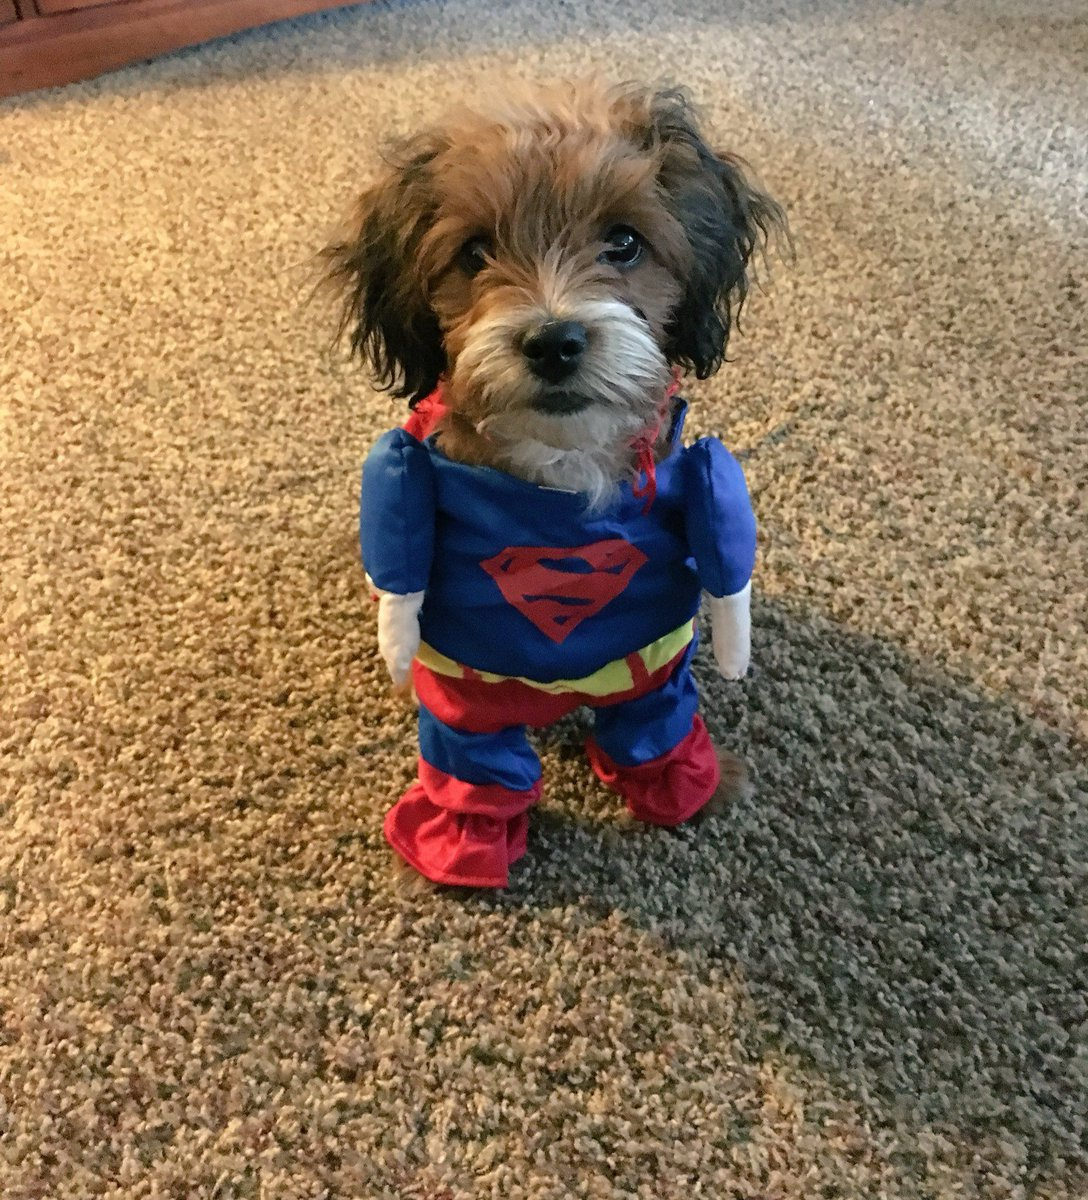 Superman reporting for duty!